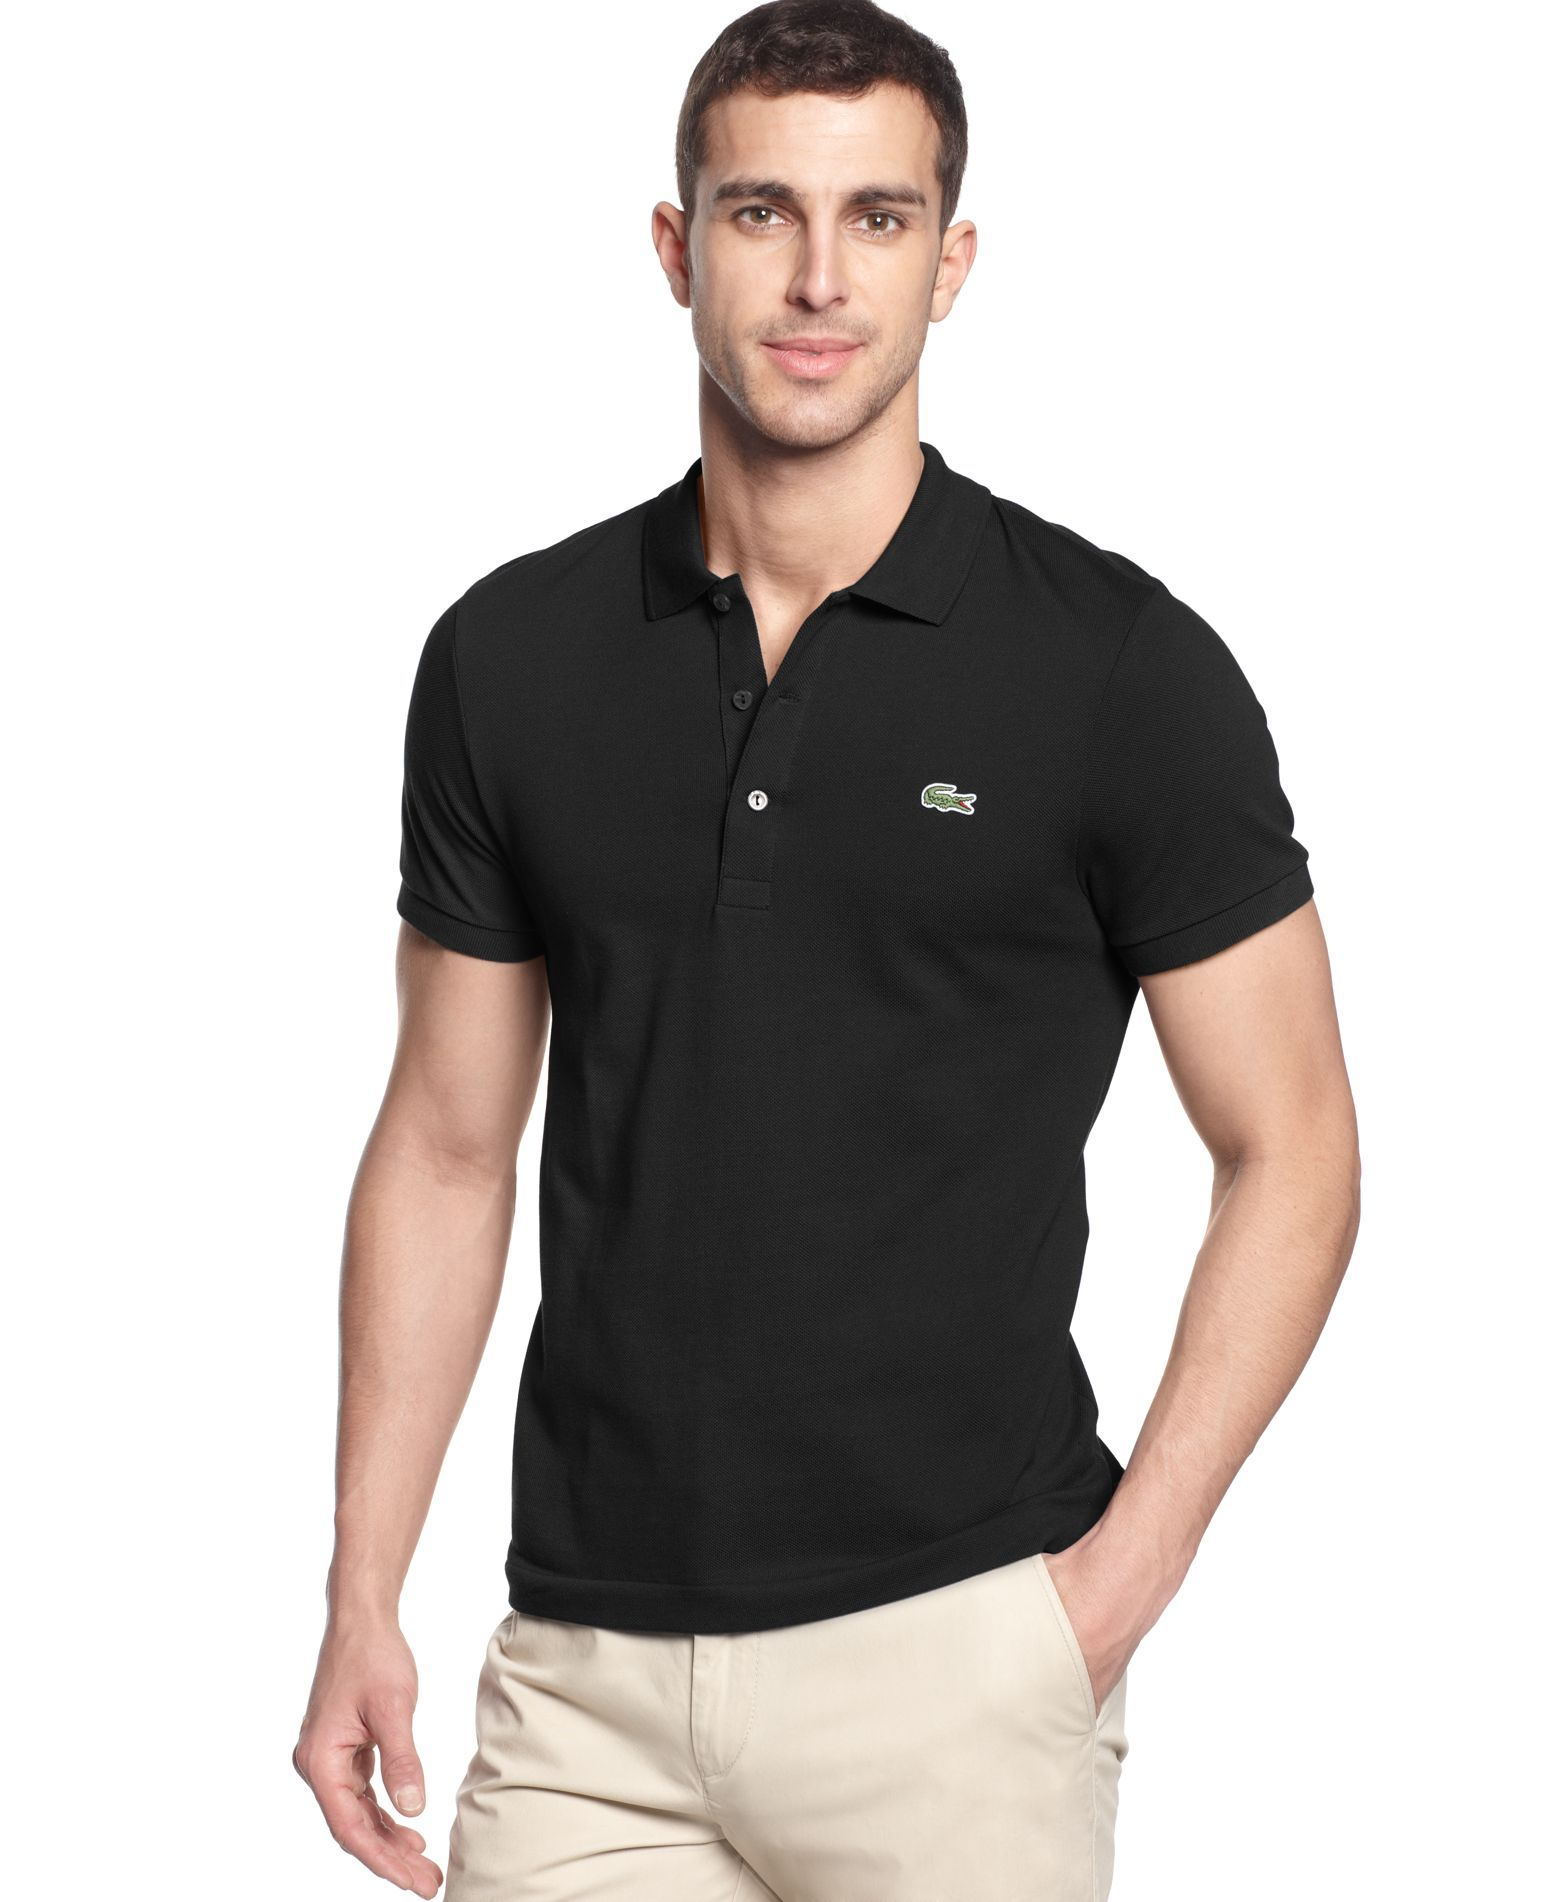 ee73d58a7844 Lacoste Slim-Fit Polo - Polos - Men - Macy s